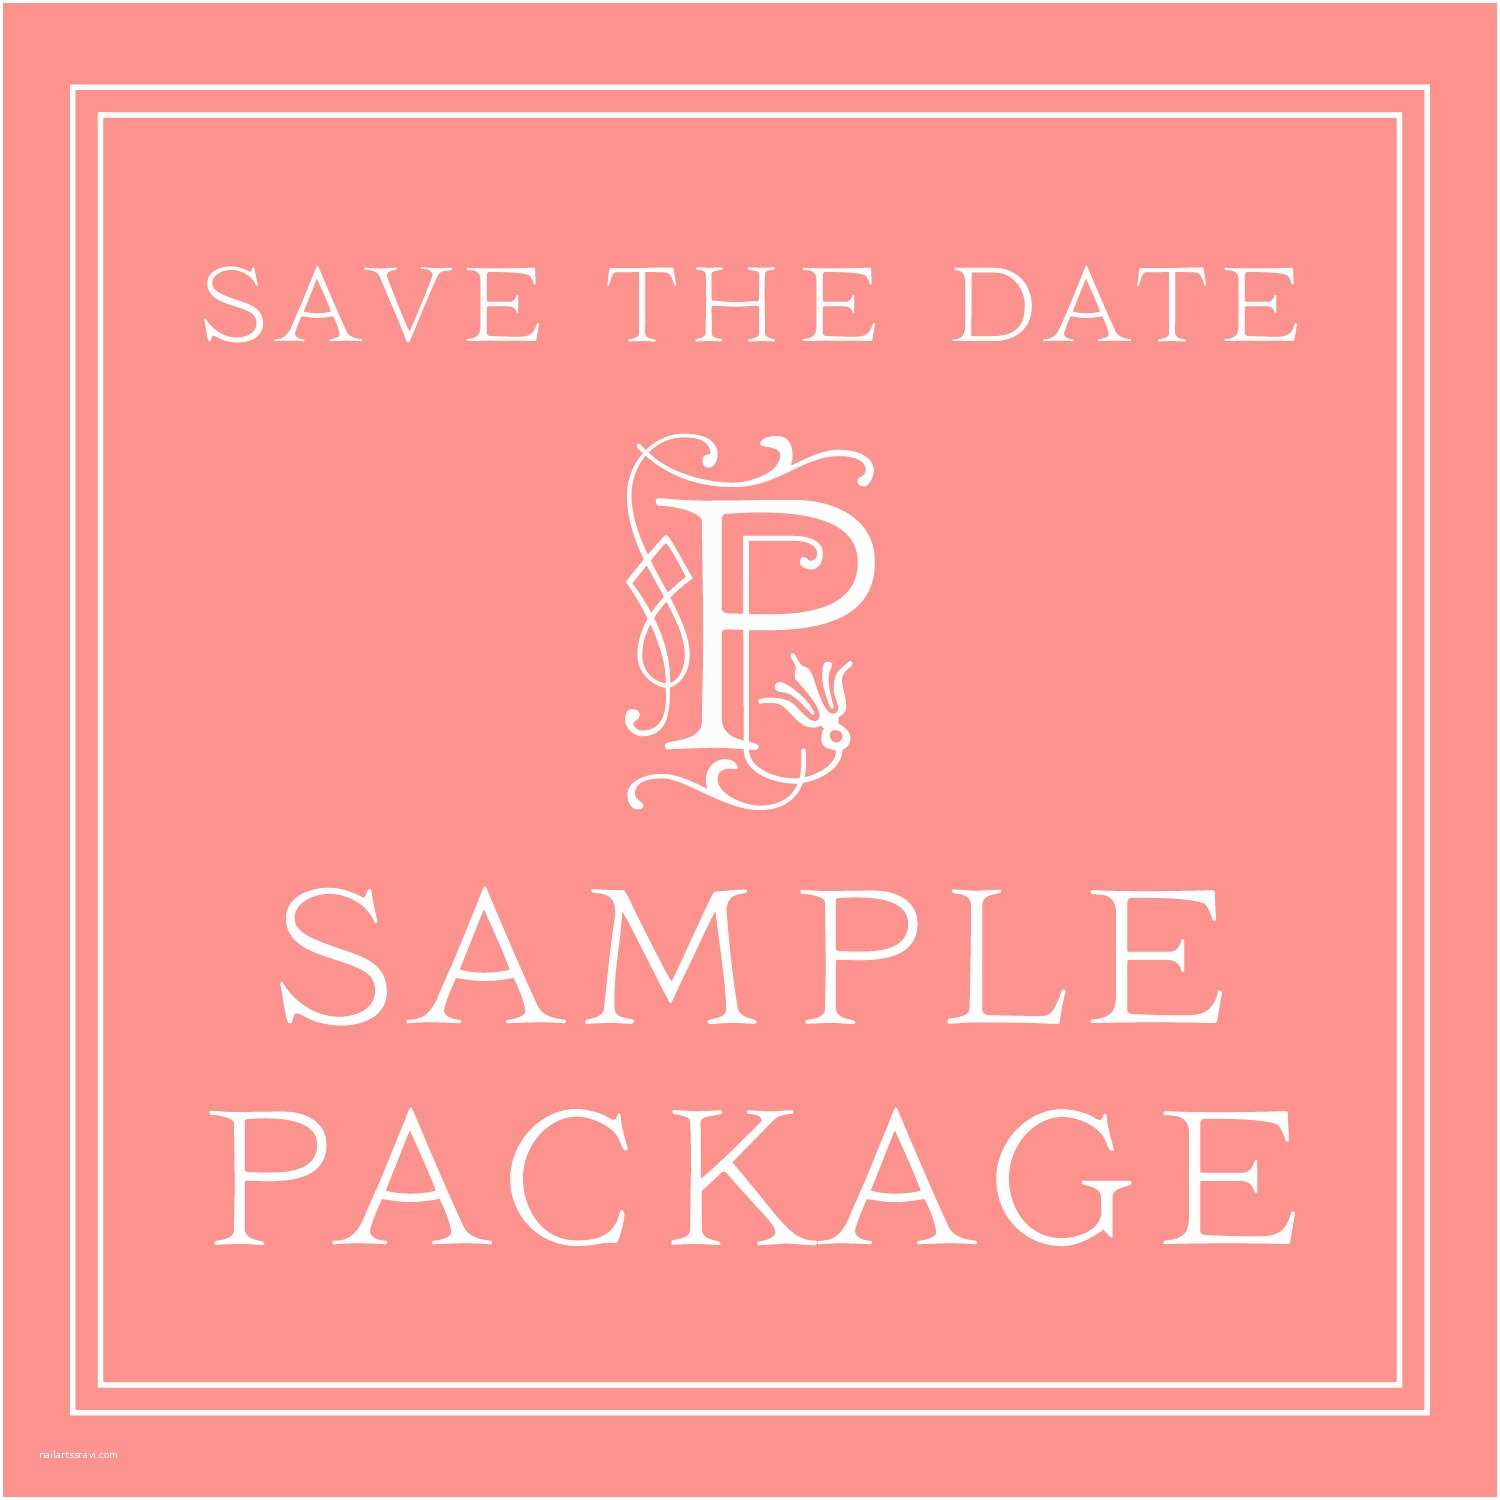 Save the Date and Wedding Invitation Packages Wedding Save the Date Sample Package – Classic Save the